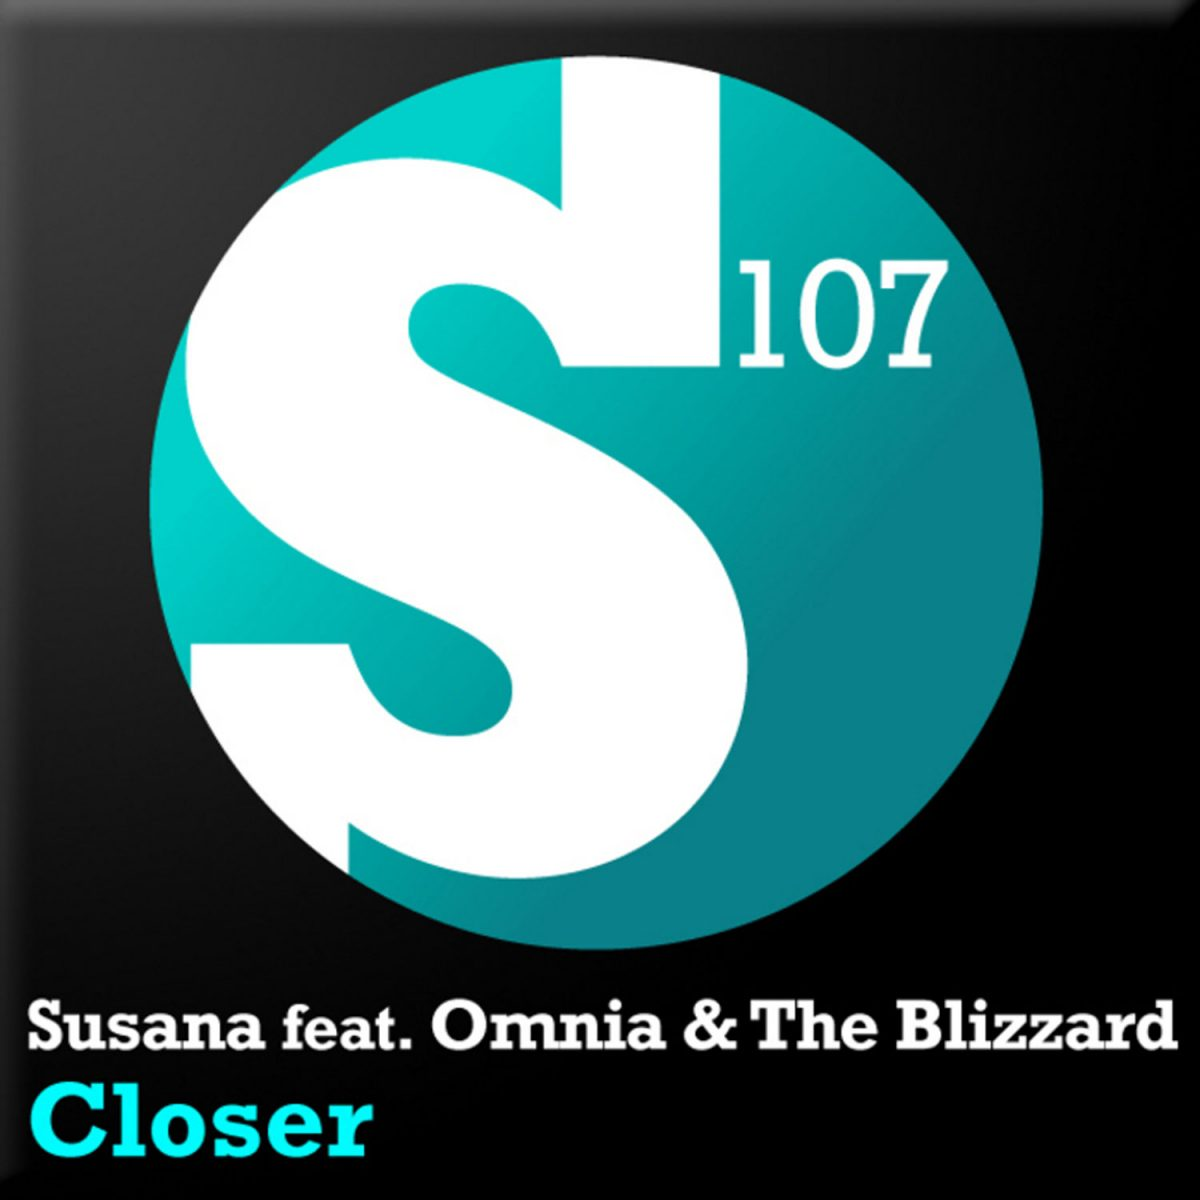 Closer – Susana feat. Omnia & The Blizzard - on S107 Recordings